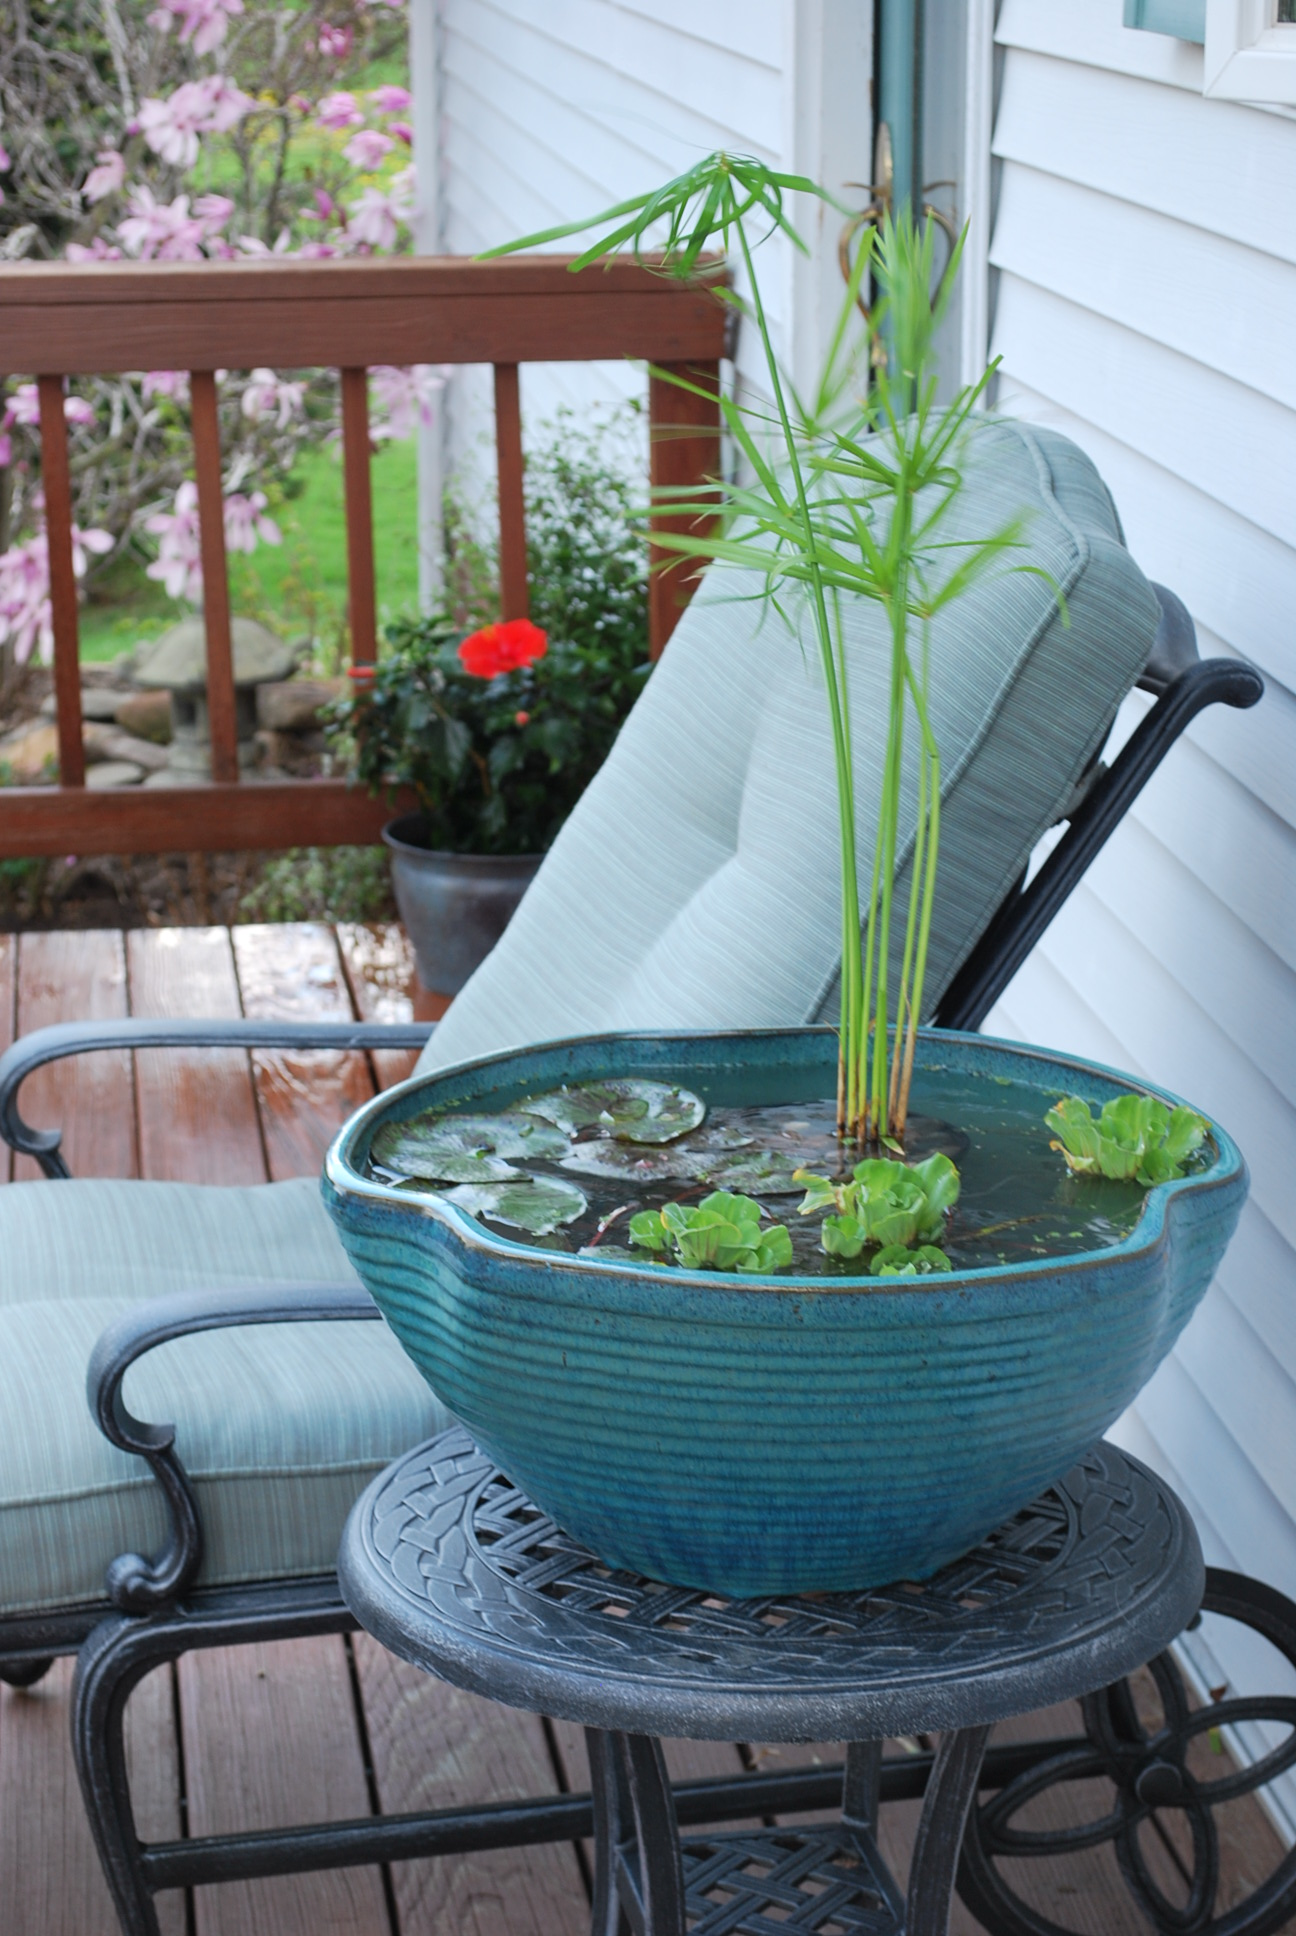 Donu0027t Have The Space For A Pondu2026.ever Consider A Container Water Garden?  There Are Many Ways To Create A Small Water Feature To Enjoy And Several  Water ...